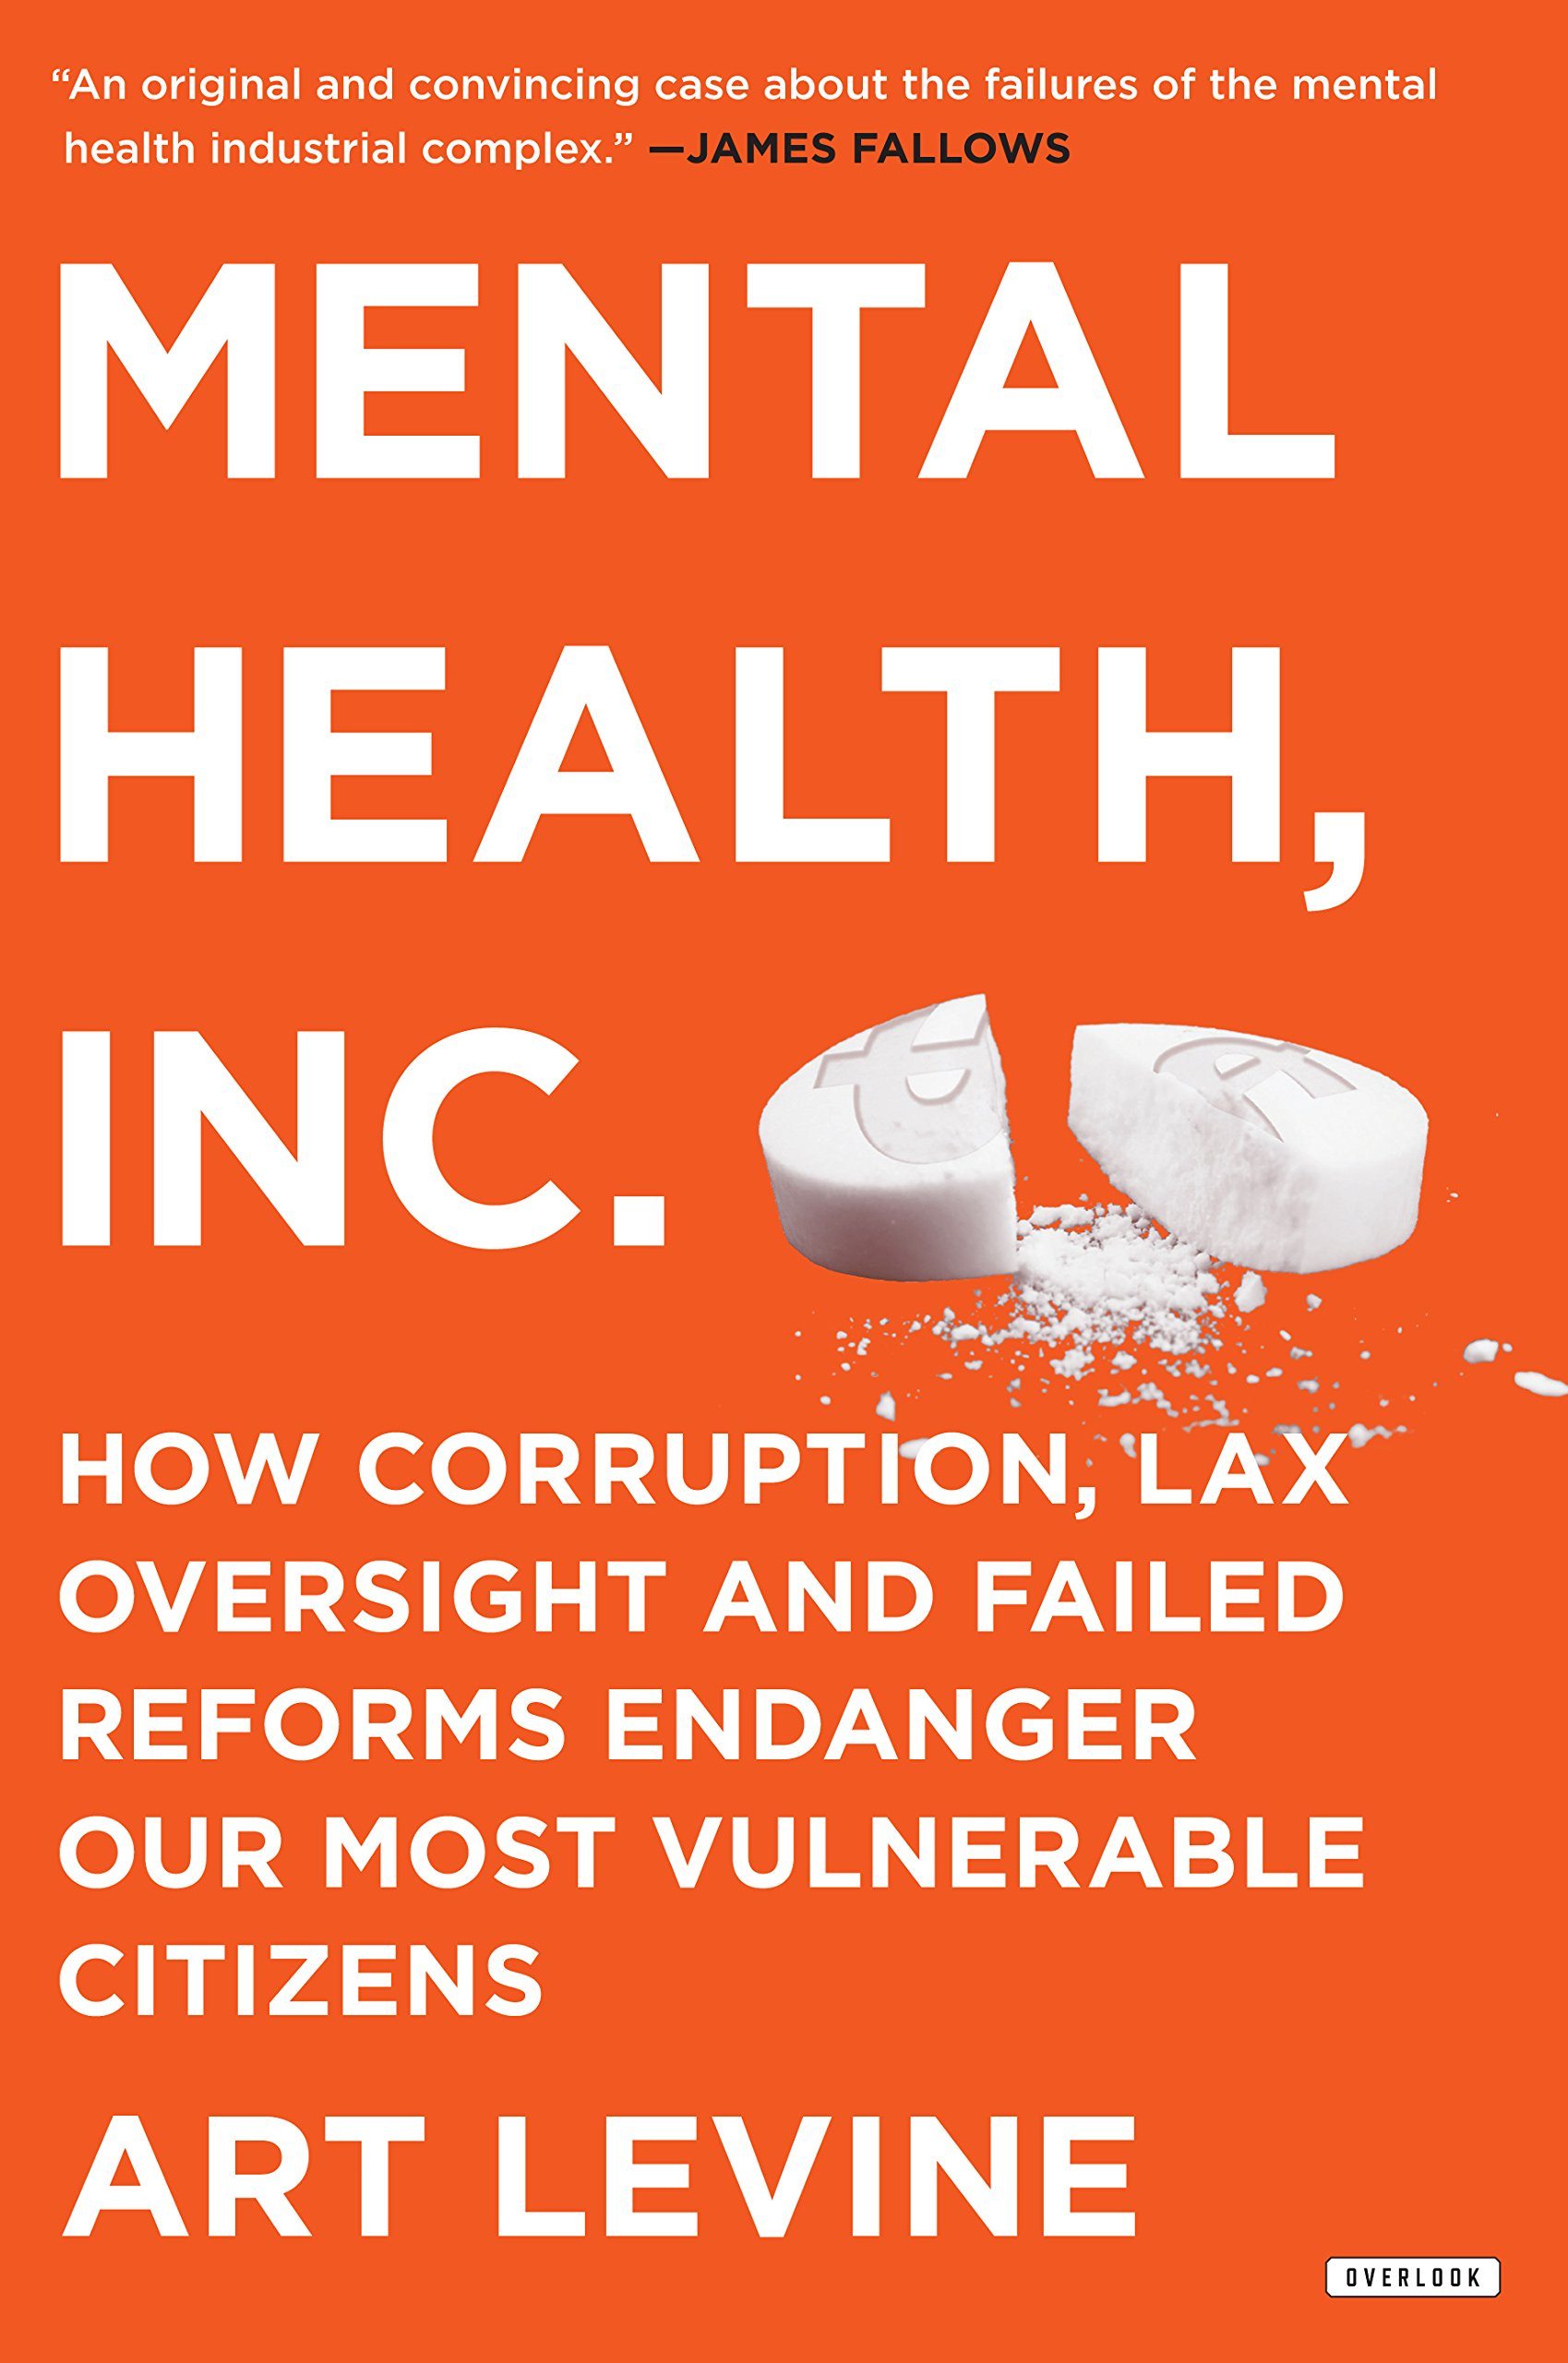 Mental Health Reform Plan Heads to the Ballot